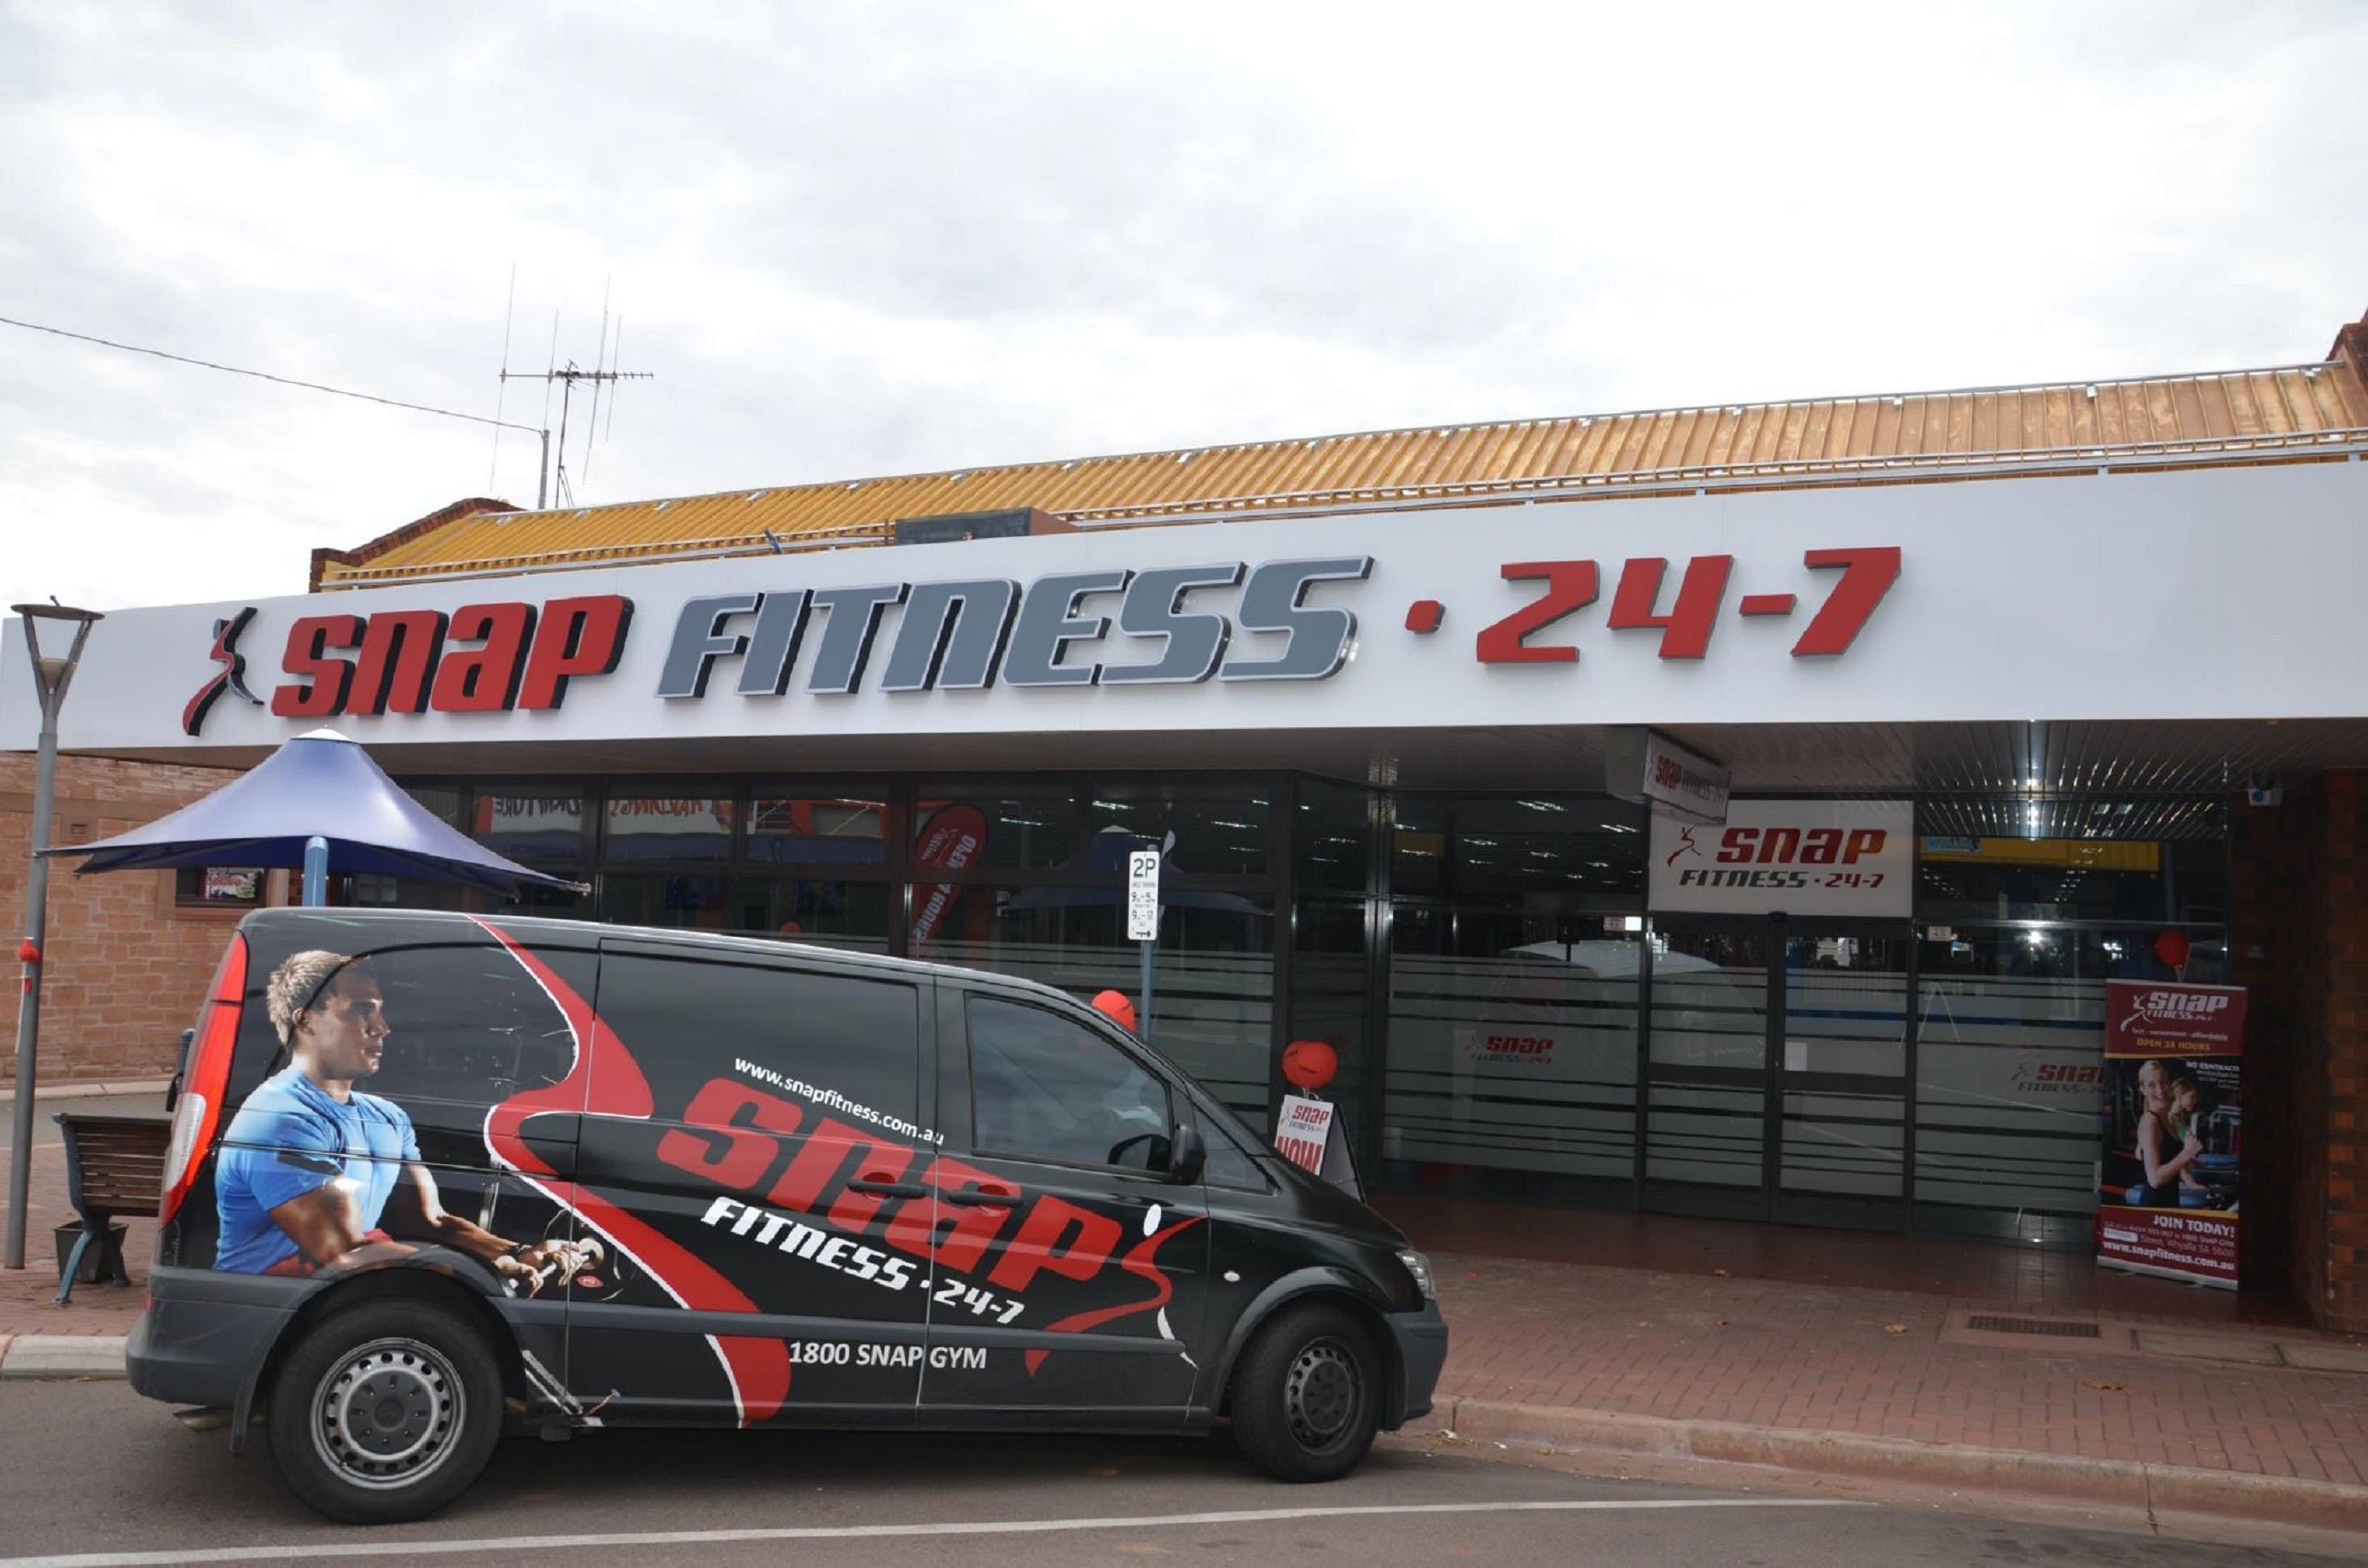 Snap Fitness Whyalla 24/7 gym - Attractions Melbourne